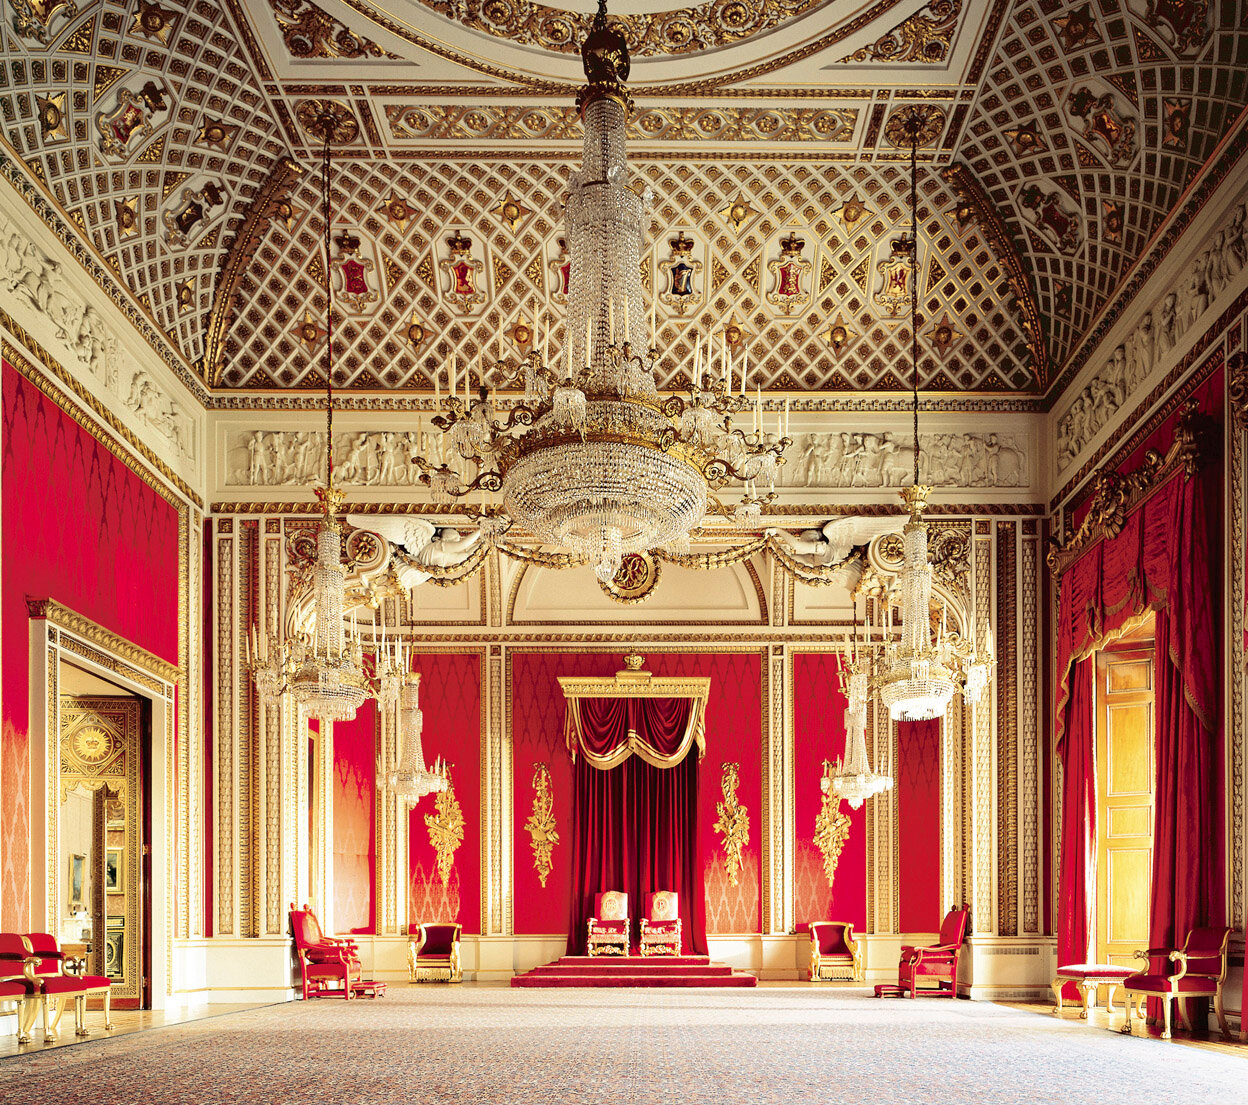 The Throne Room<br/>The State Rooms, Buckingham Palace <br/><br/>Credit line:The Royal Collection (c) 2009, Her Majesty Queen Elizabeth II <br/>Photographer: Derry Moore<br/><br/>This photograph is issued to